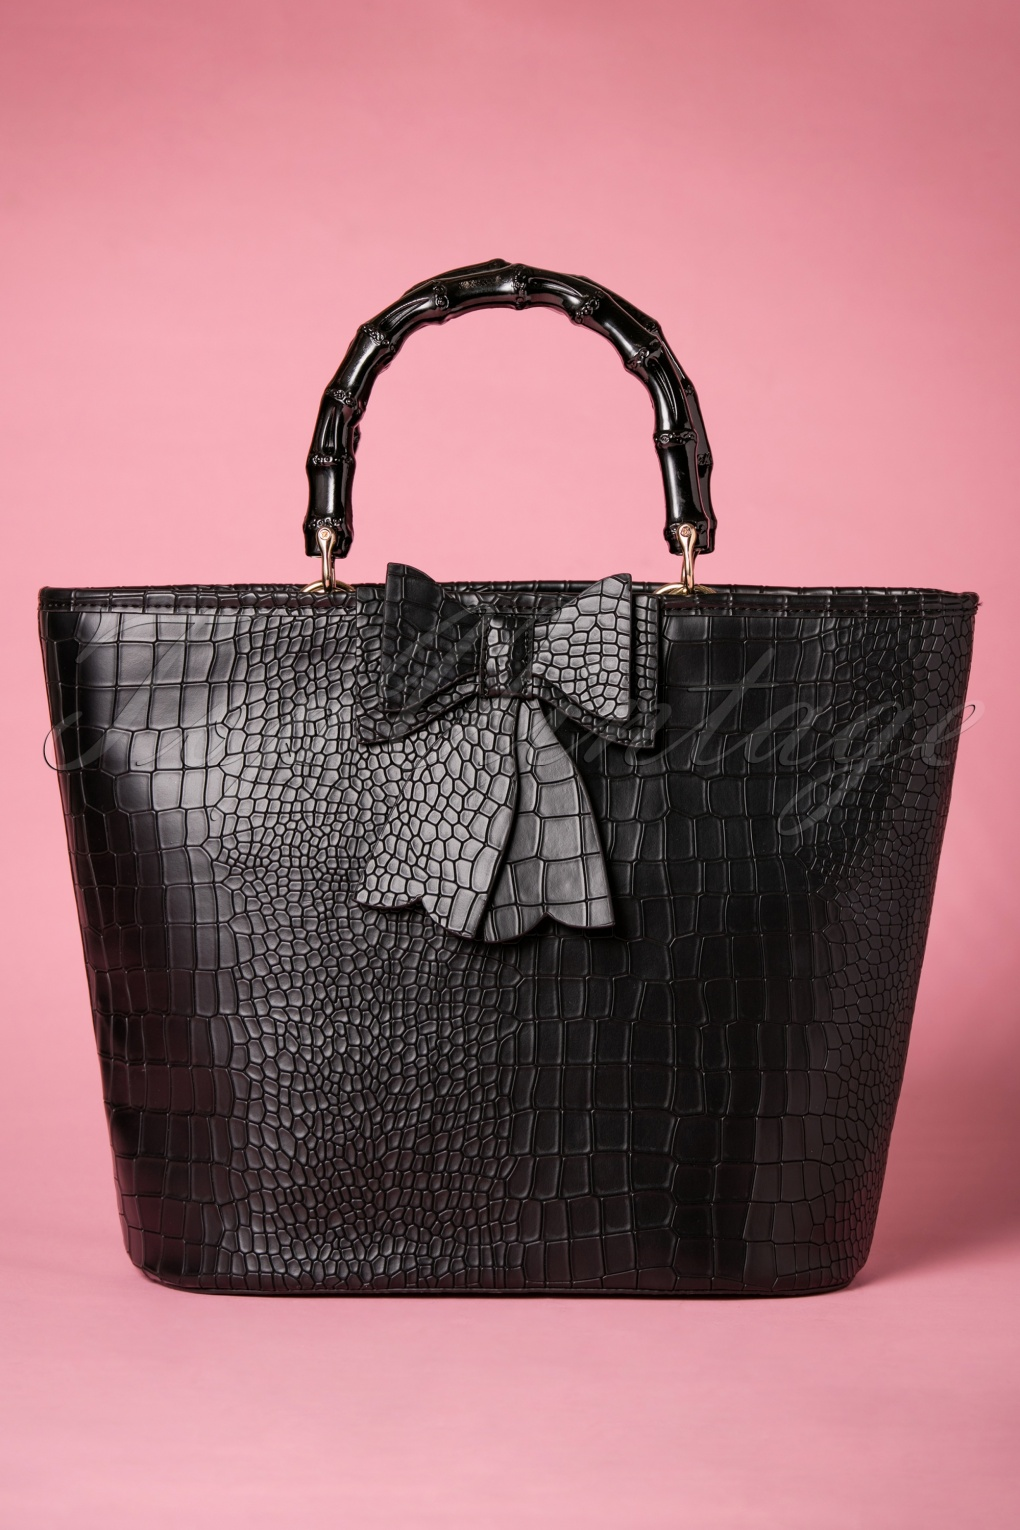 What Did Women Wear in the 1950s? 1950s Fashion Guide 50s Brunei Handbag in Black £41.74 AT vintagedancer.com